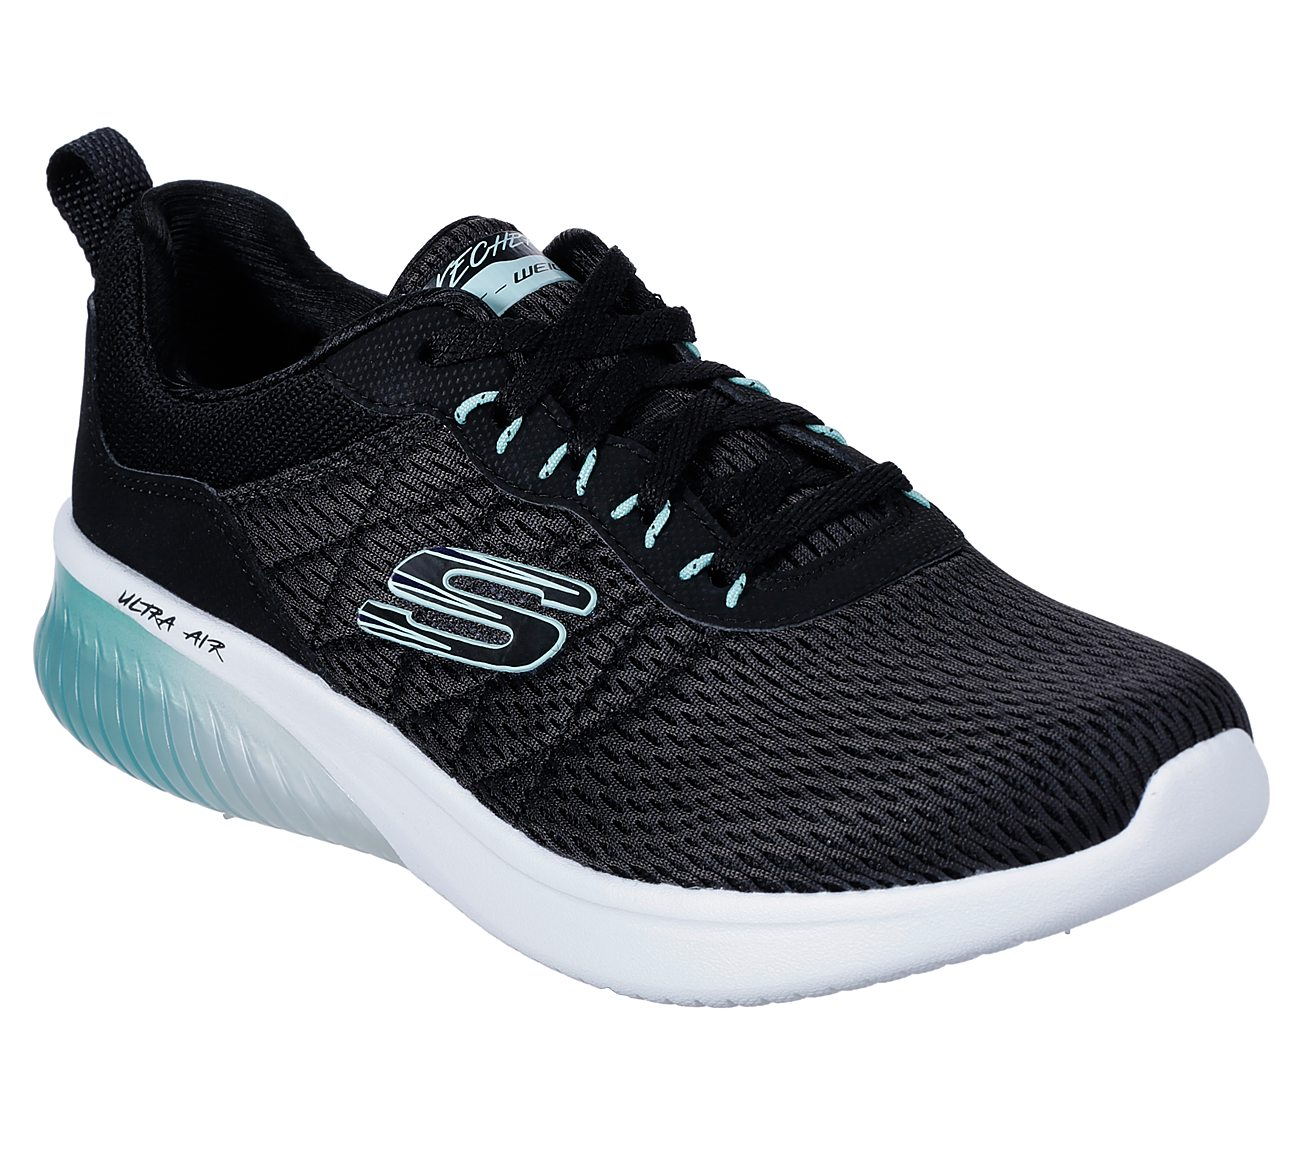 1ce83c6cfd53 Buy SKECHERS Skech-Air Ultra Flex Skech-Air Shoes only  80.00